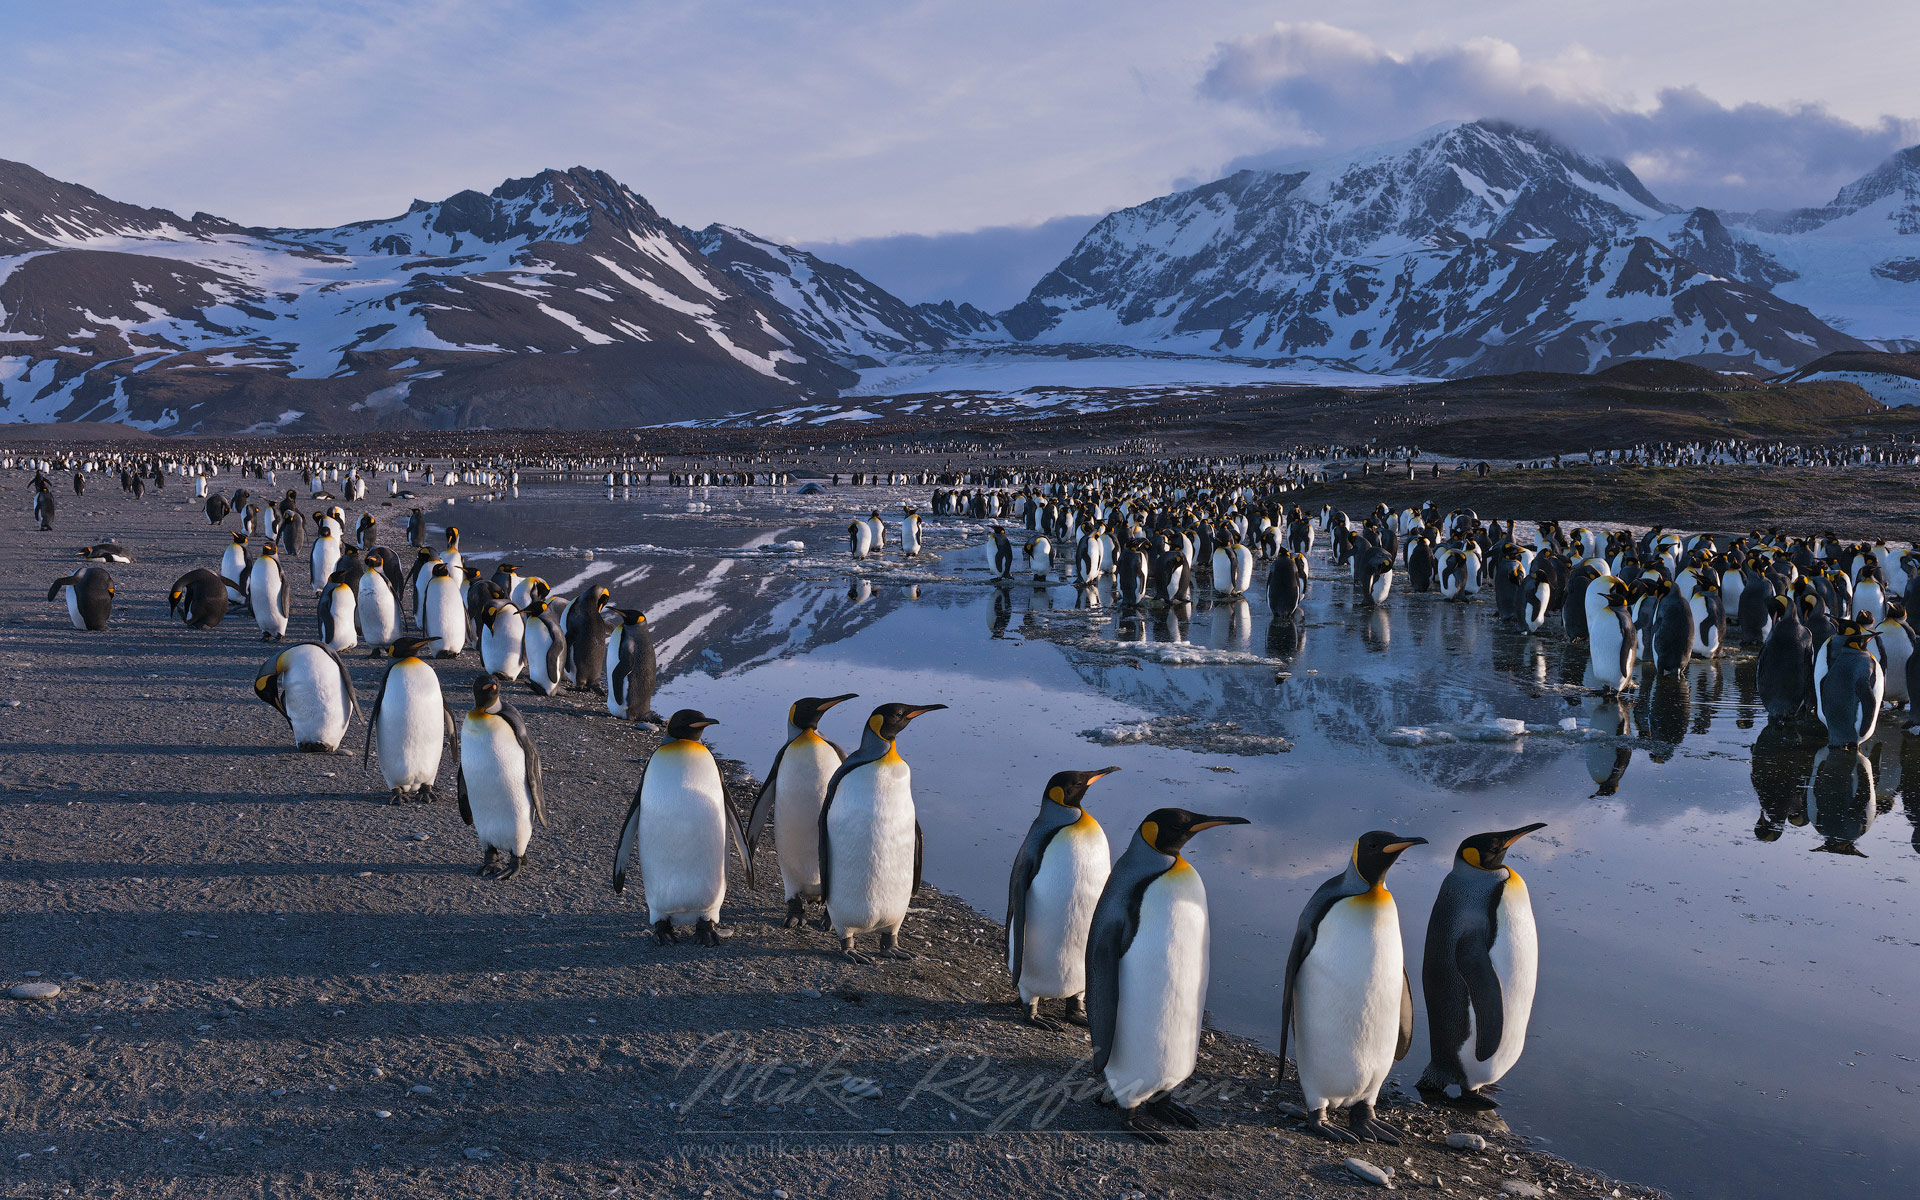 Evening With The Kings. King Penguin (Aptenodytes patagonicus) Colony, Saint Andrews Bay, South Georgia, Sub-Antarctic - King-Penguins-South-Georgia-Sub-Antarctic - Mike Reyfman Photography